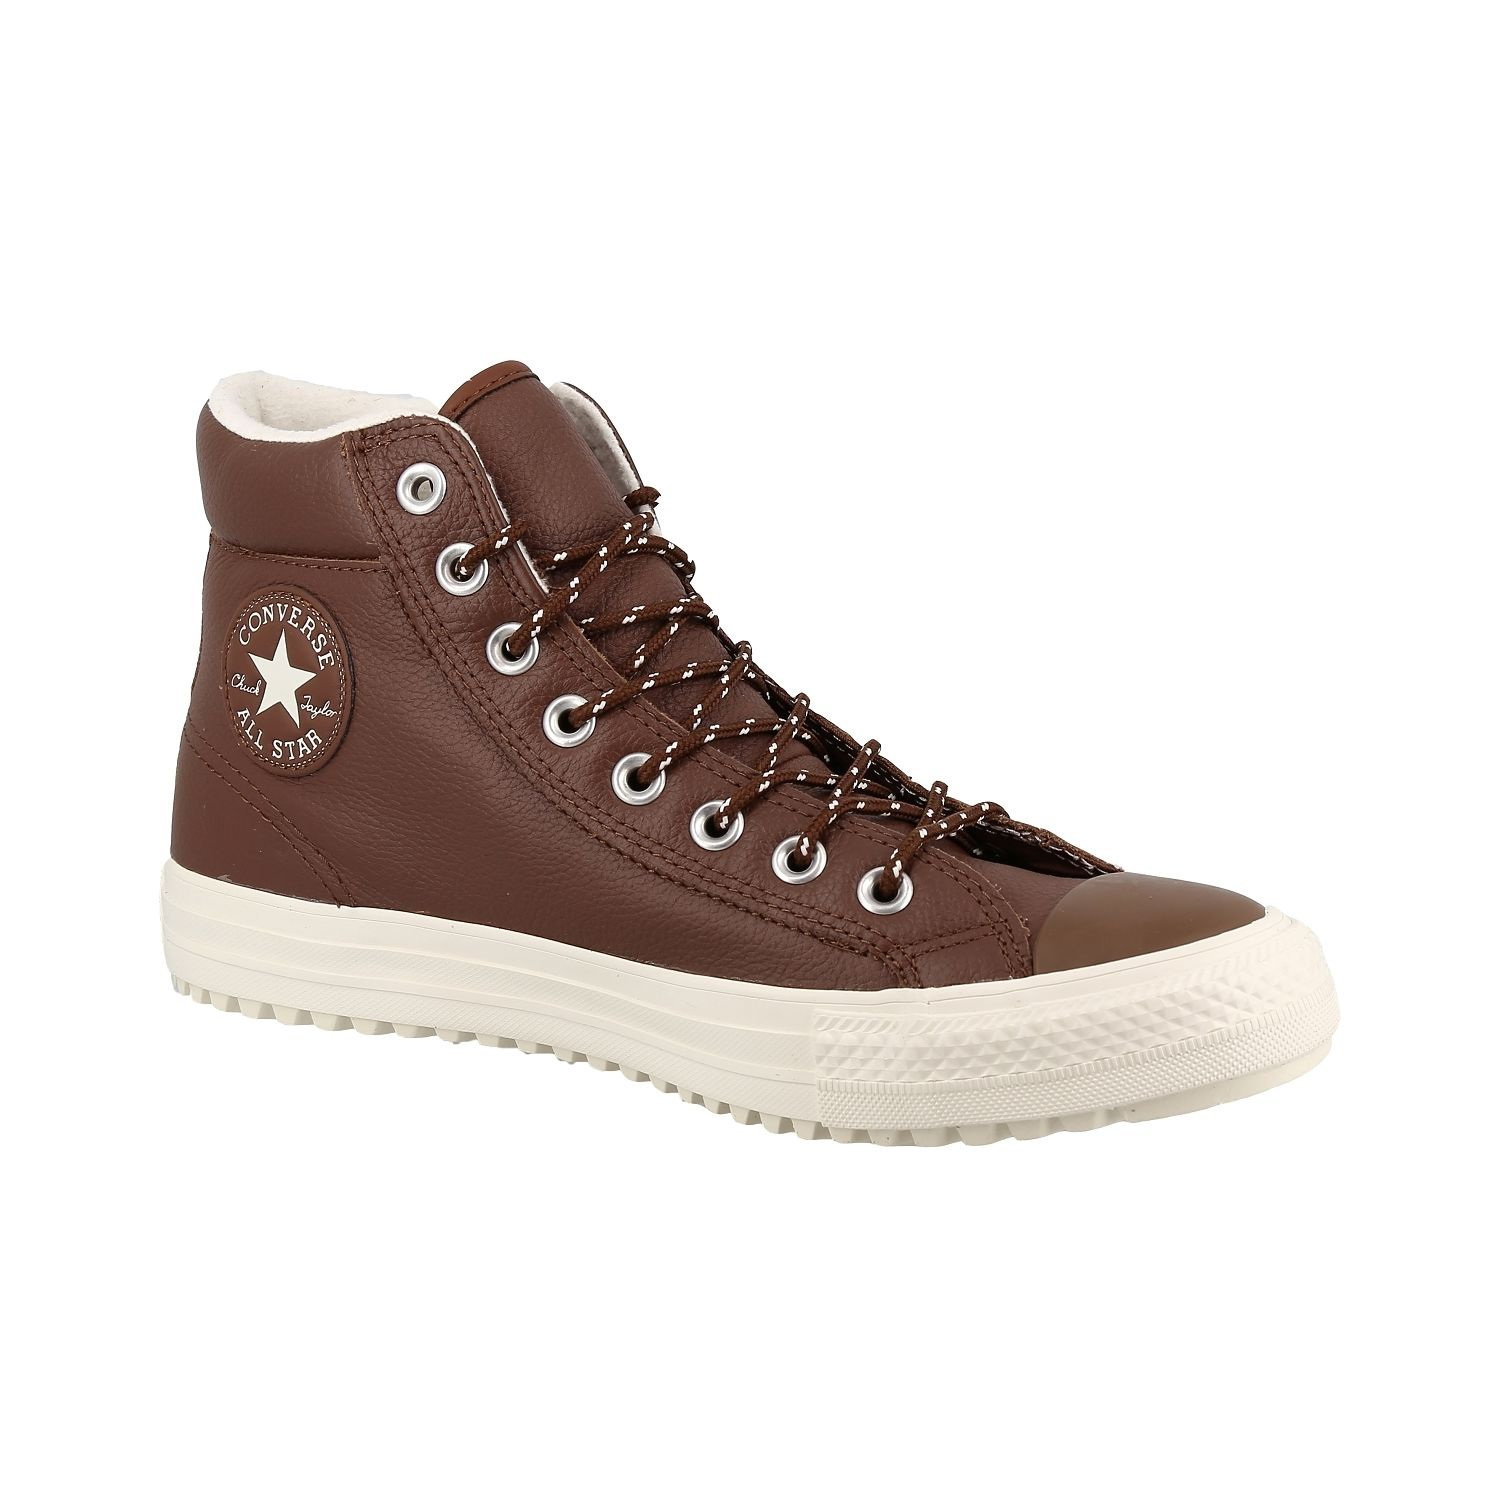 Converse - Boot Pc Tumbled Leather